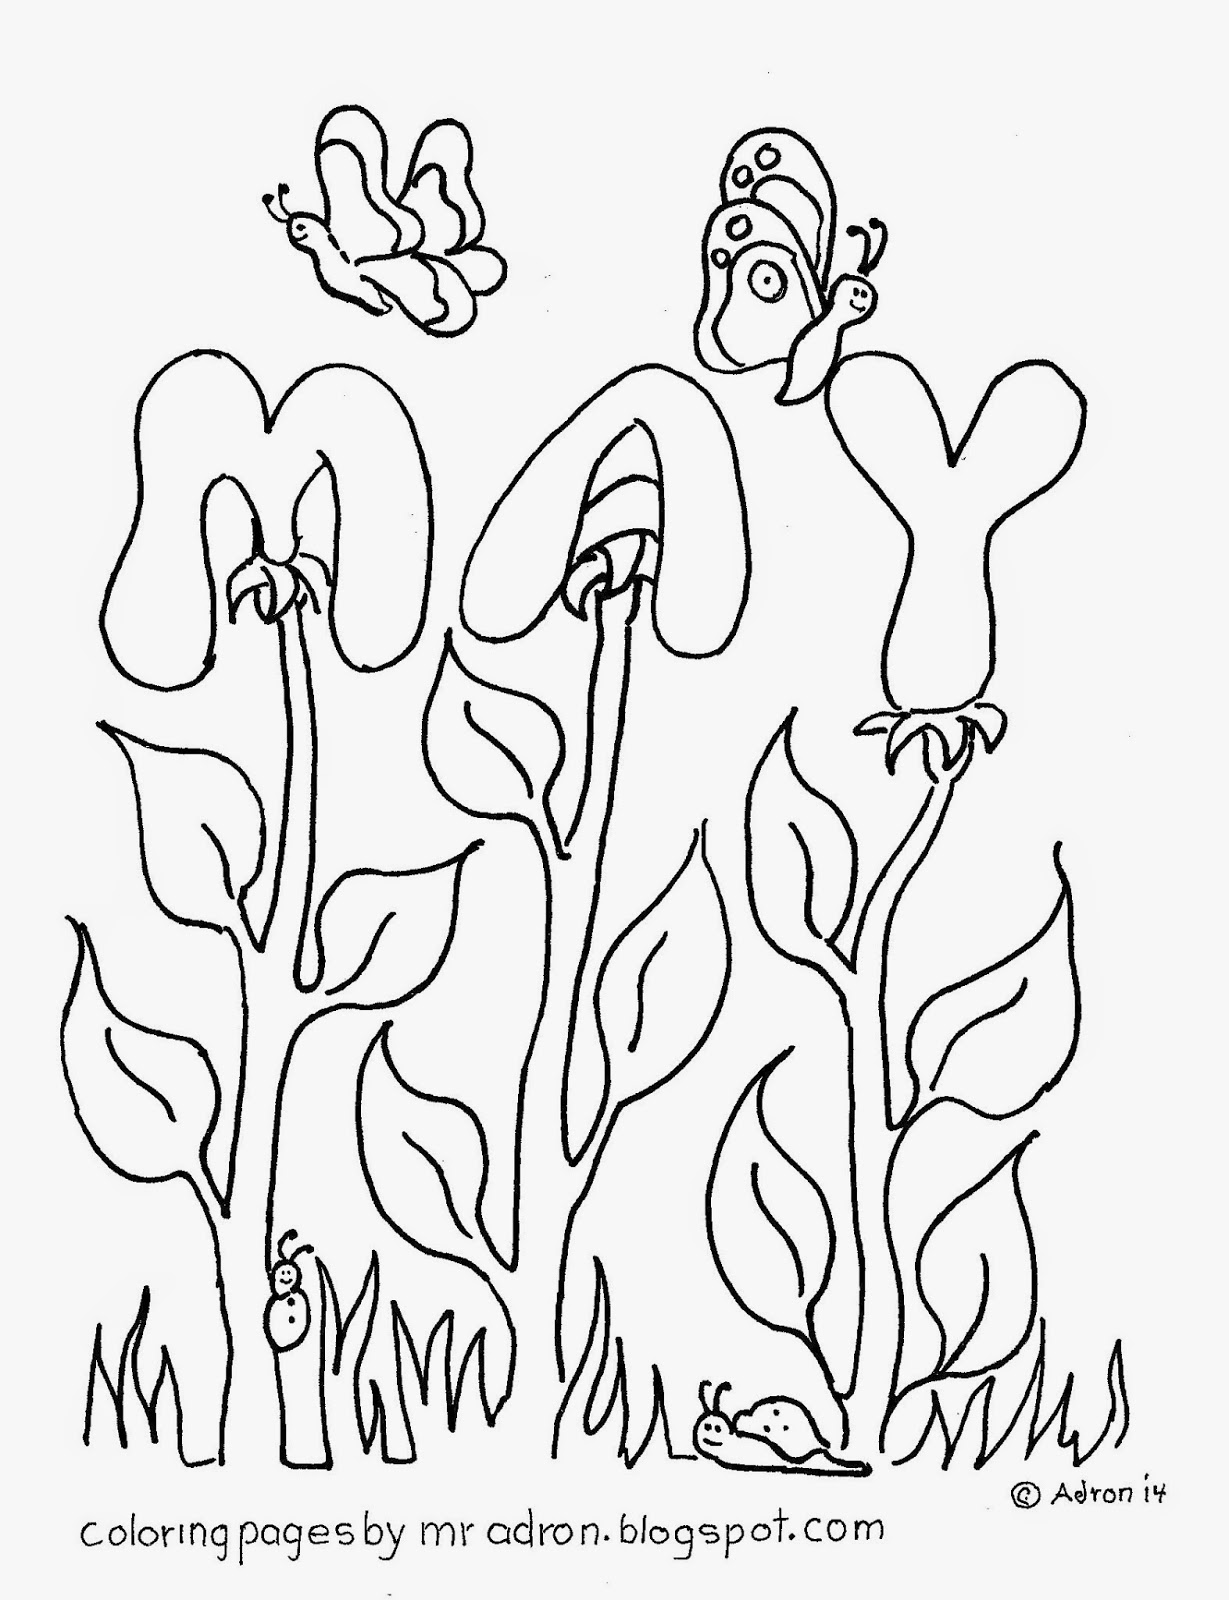 Coloring pages for kids by mr adron the month of may for May coloring pages printable